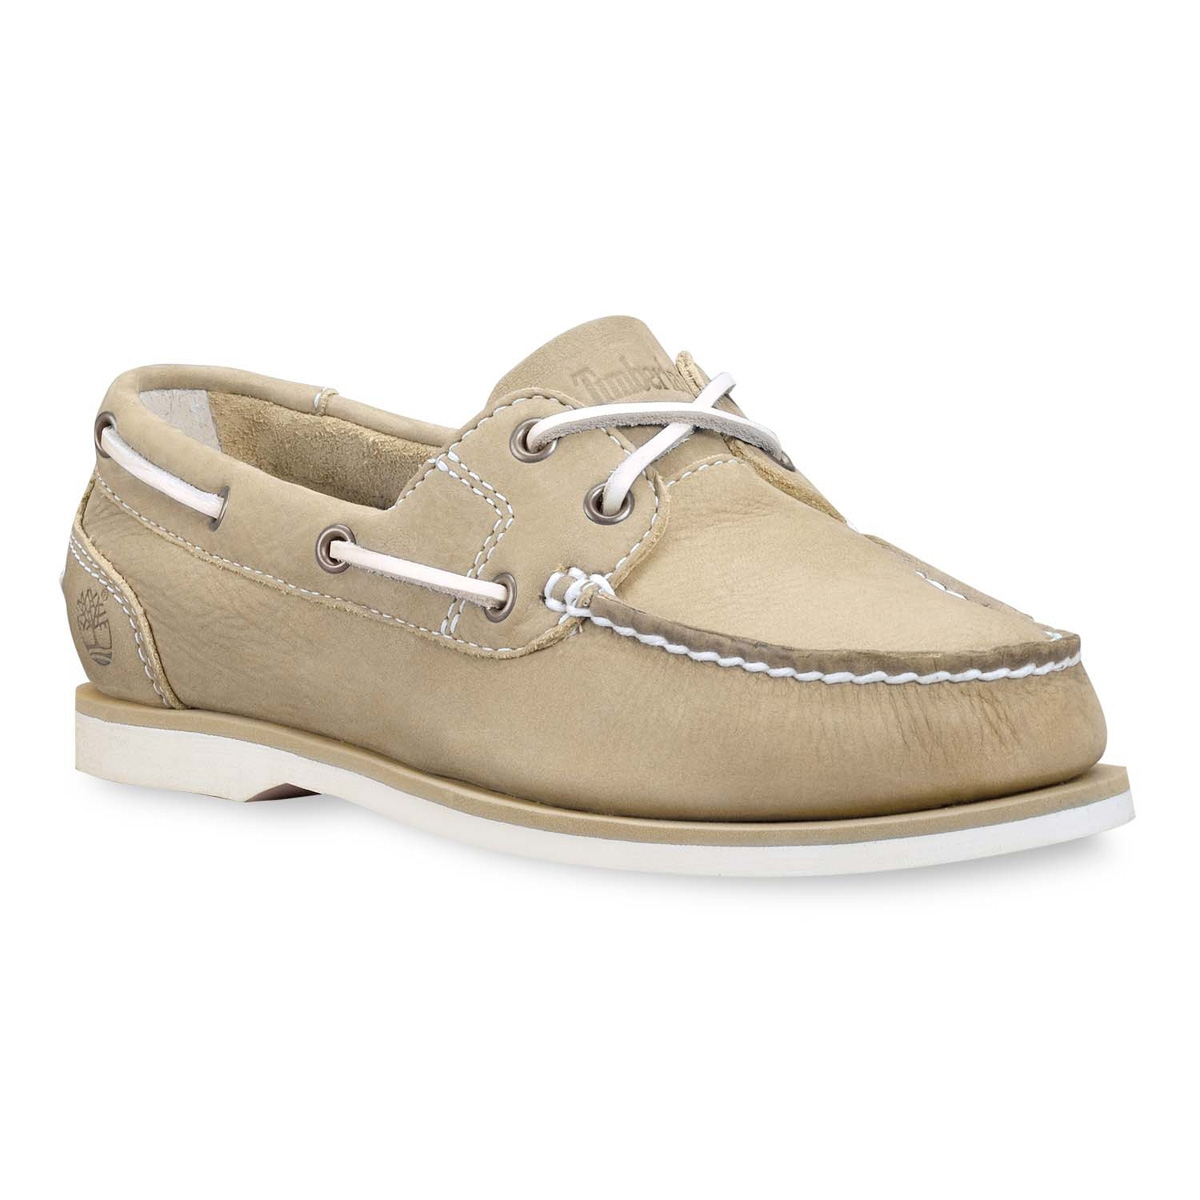 timberland women's classic boat shoes